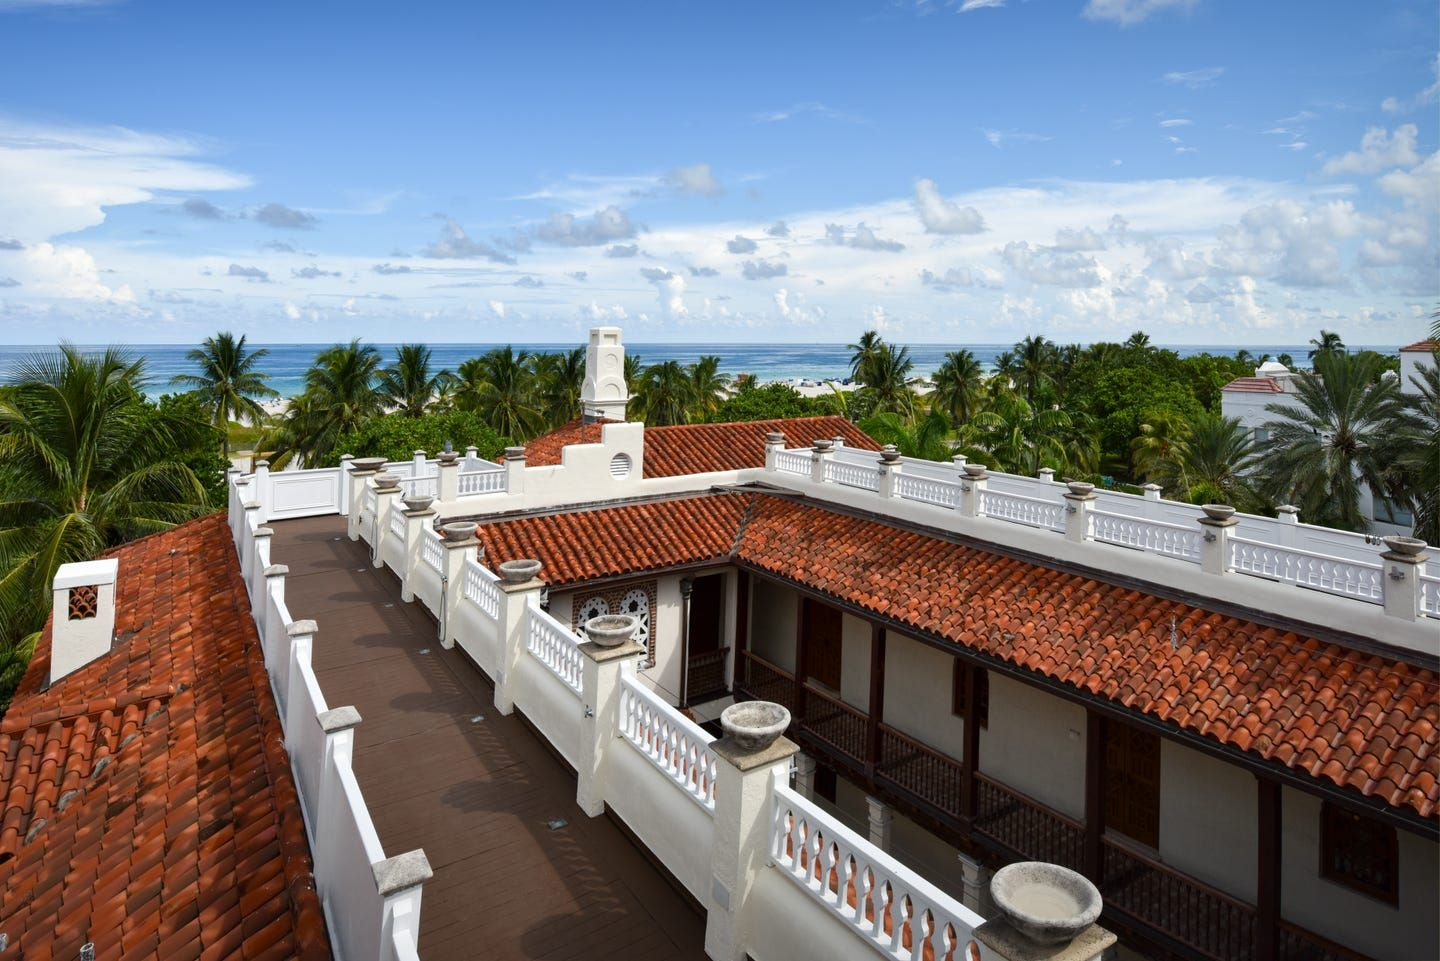 Take A Virtual Tour Of Gianni Versace's Former Miami